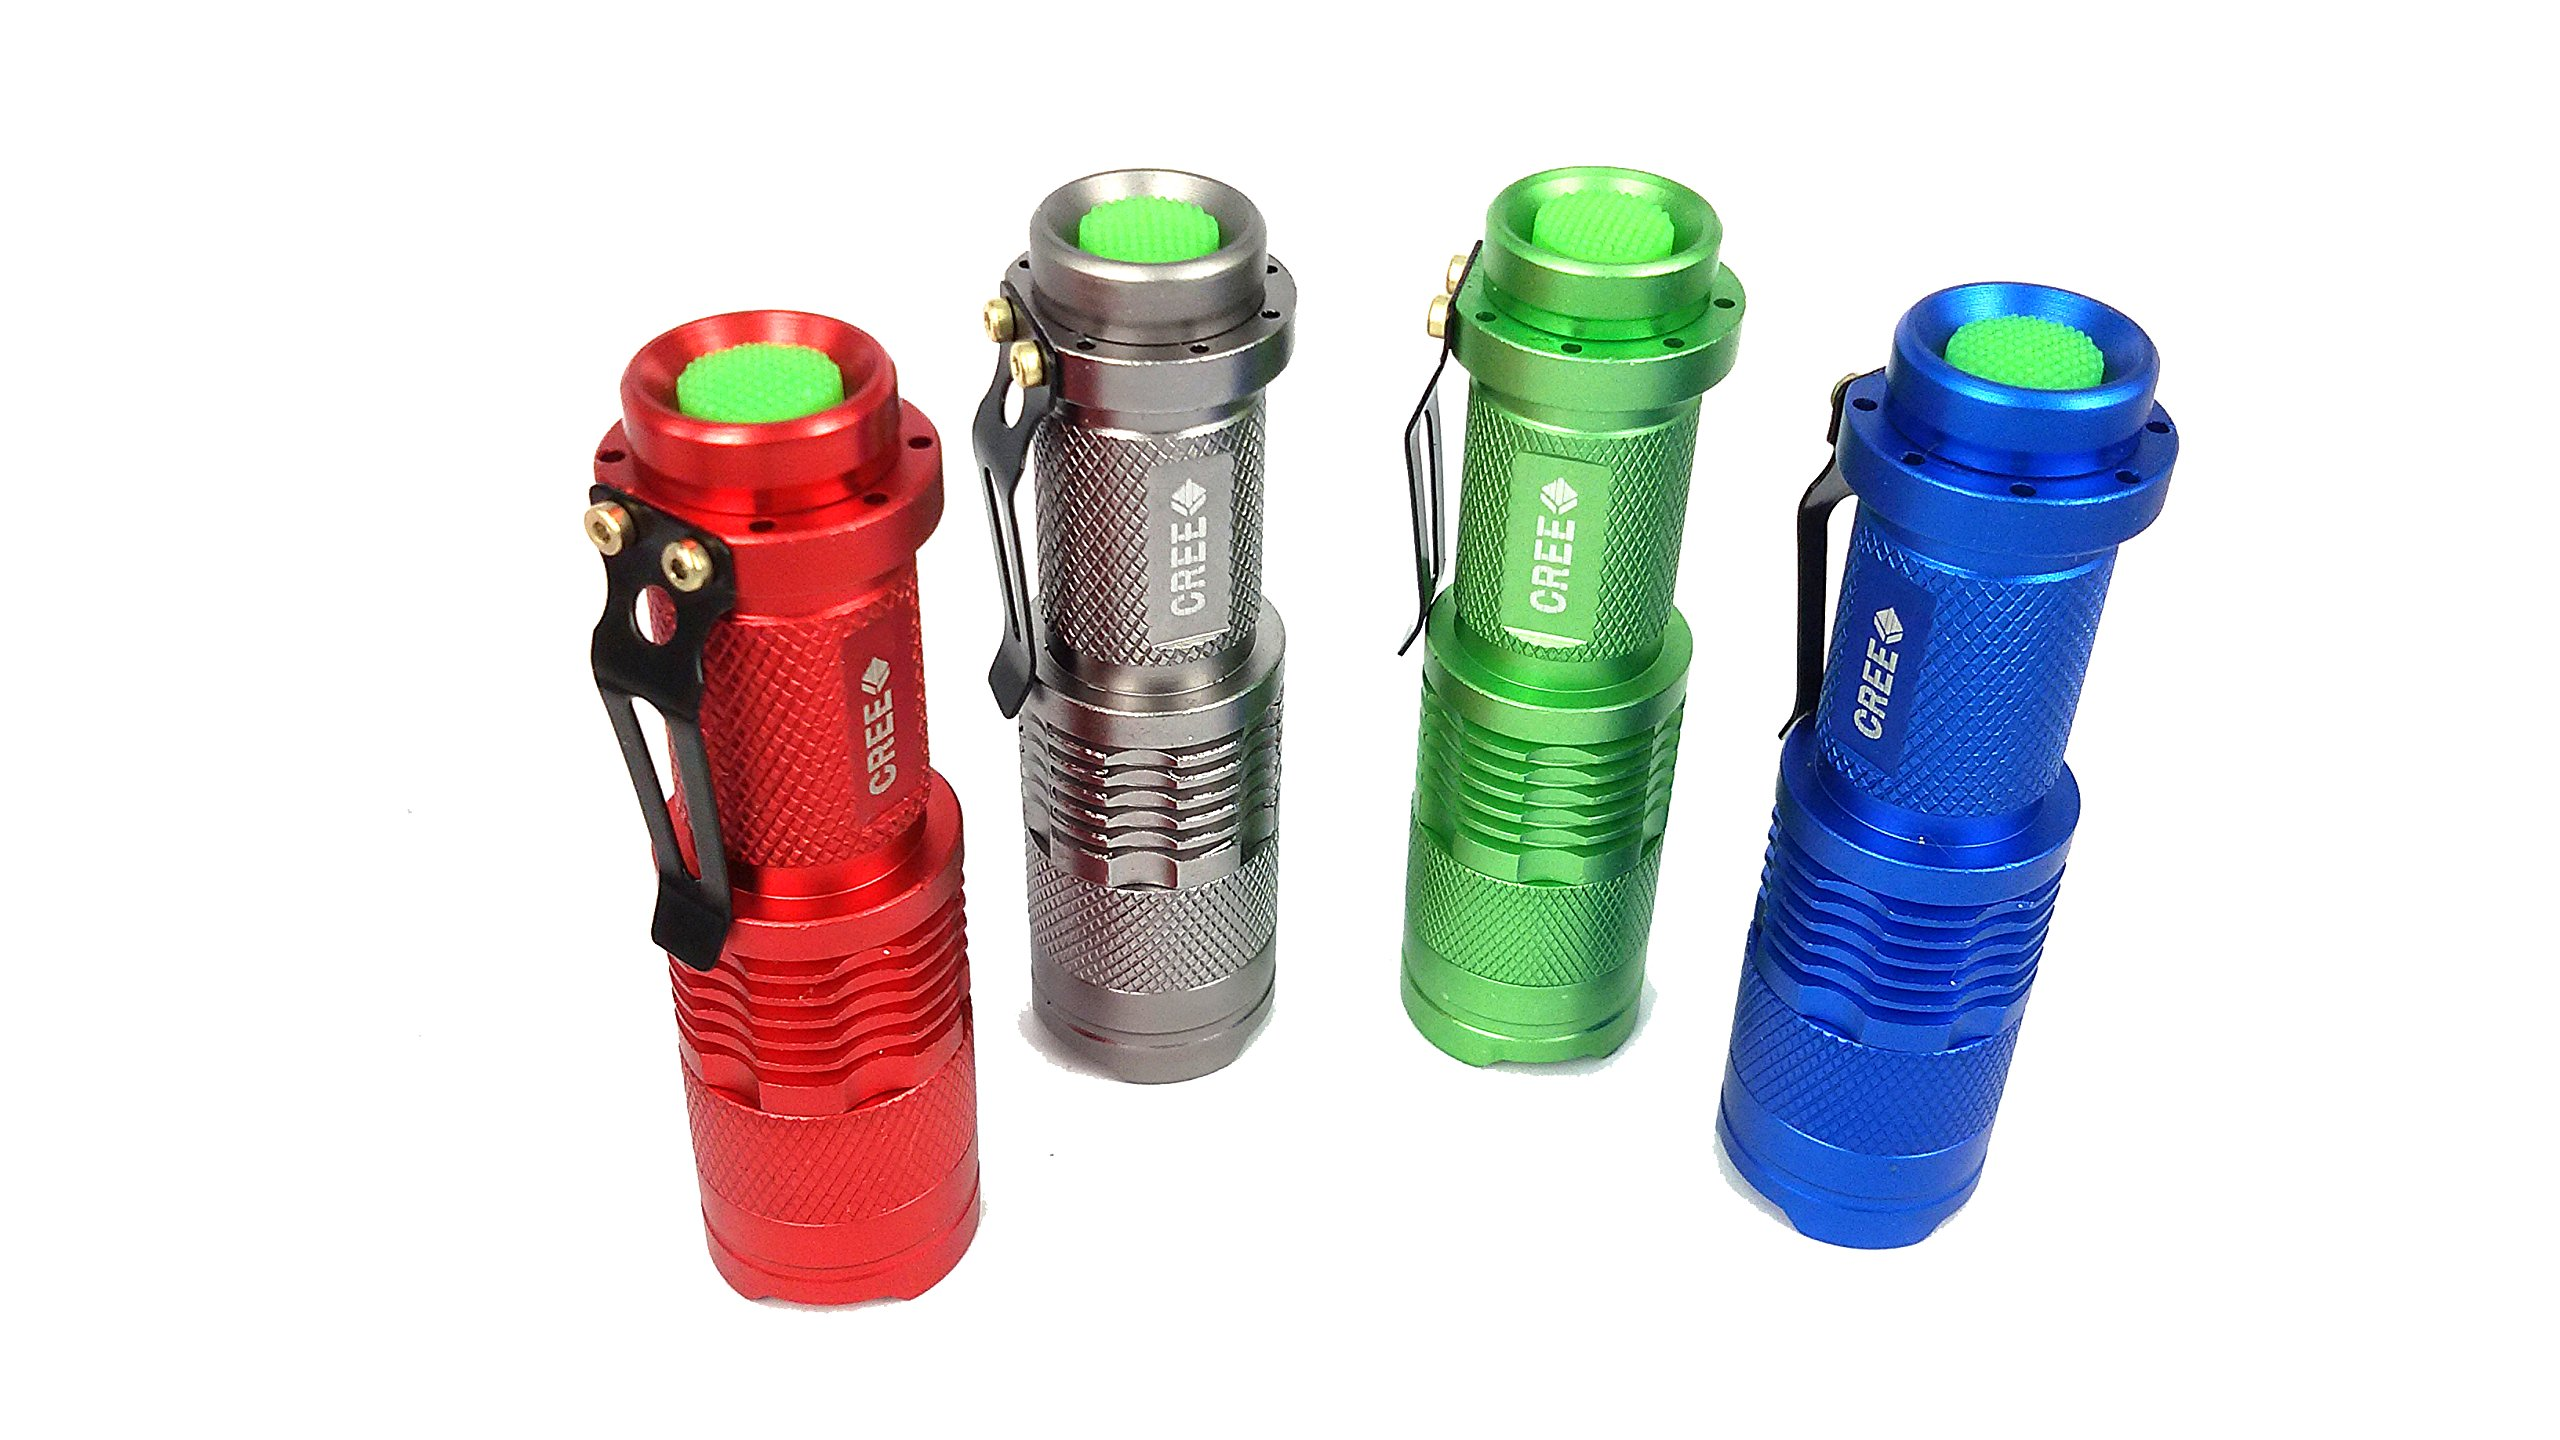 Goldengulf 3 Mode Focus Adjustable Cree Led High Power Super Bright Portable Handheld Flashlight Tactical Torch Lamp For Riding Camping Hiking Hunting, 4pcs/pack-Red/Blue/Siliver/Green